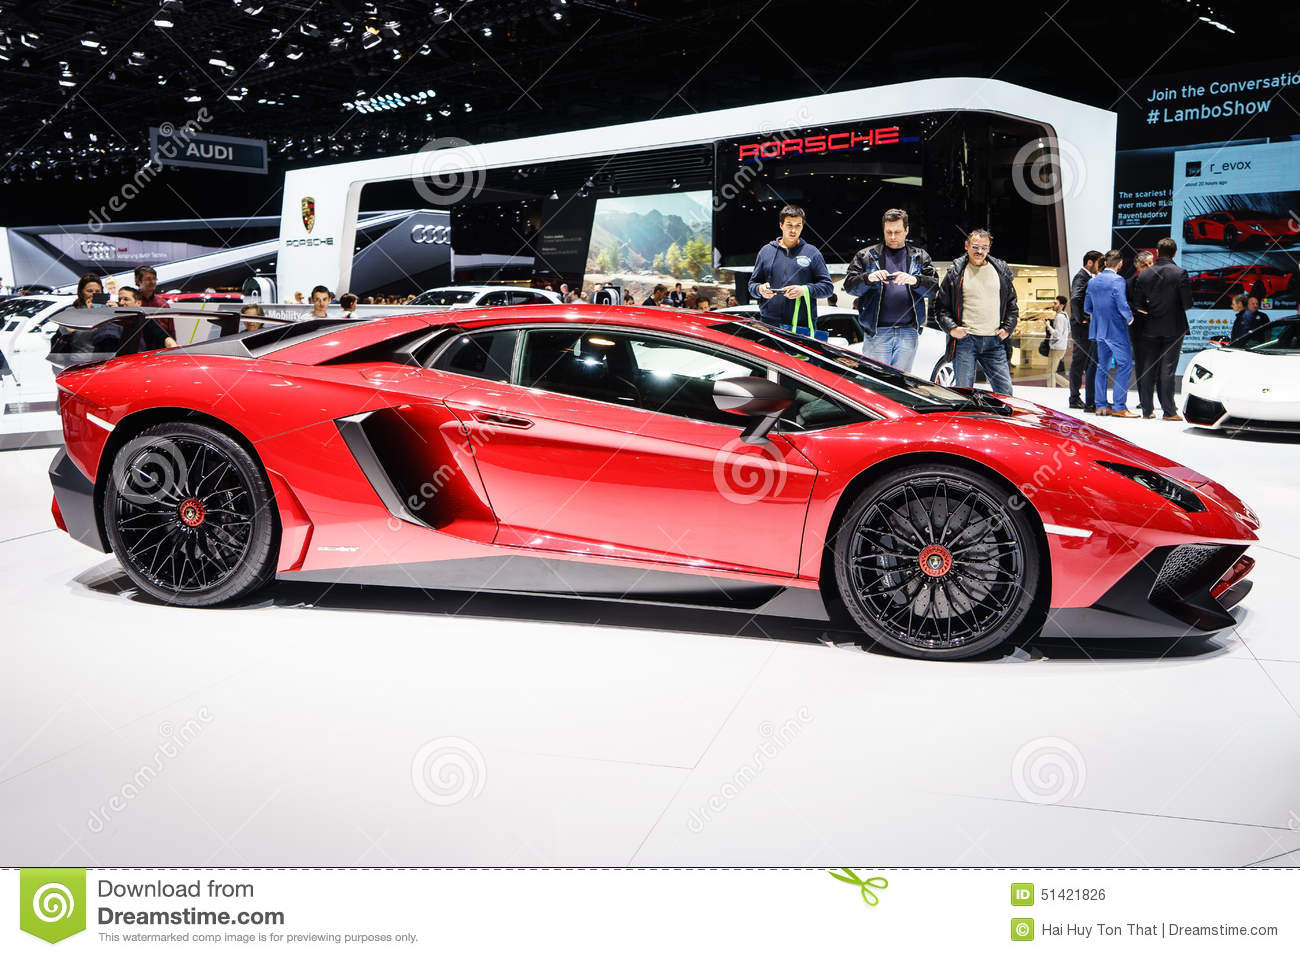 lamborghini aventador sv salon de l 39 automobile geneve 2015 photo ditorial image 51421826. Black Bedroom Furniture Sets. Home Design Ideas